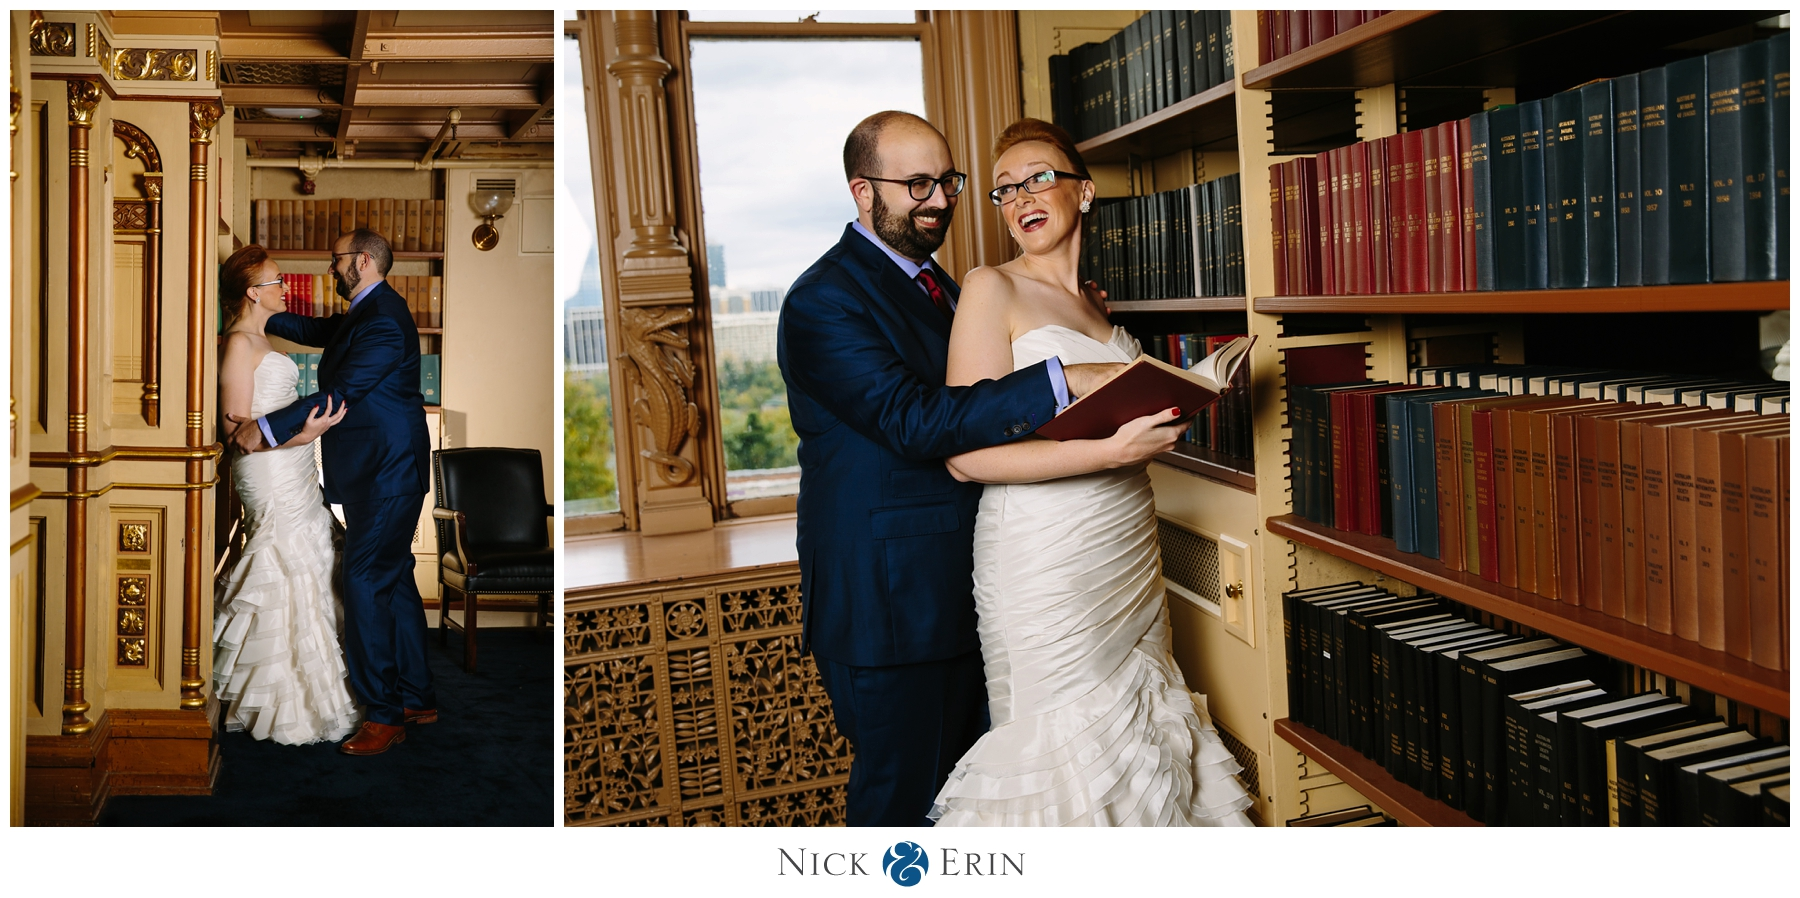 donner_photography_washington-dc-wedding_alanna-josh_0021